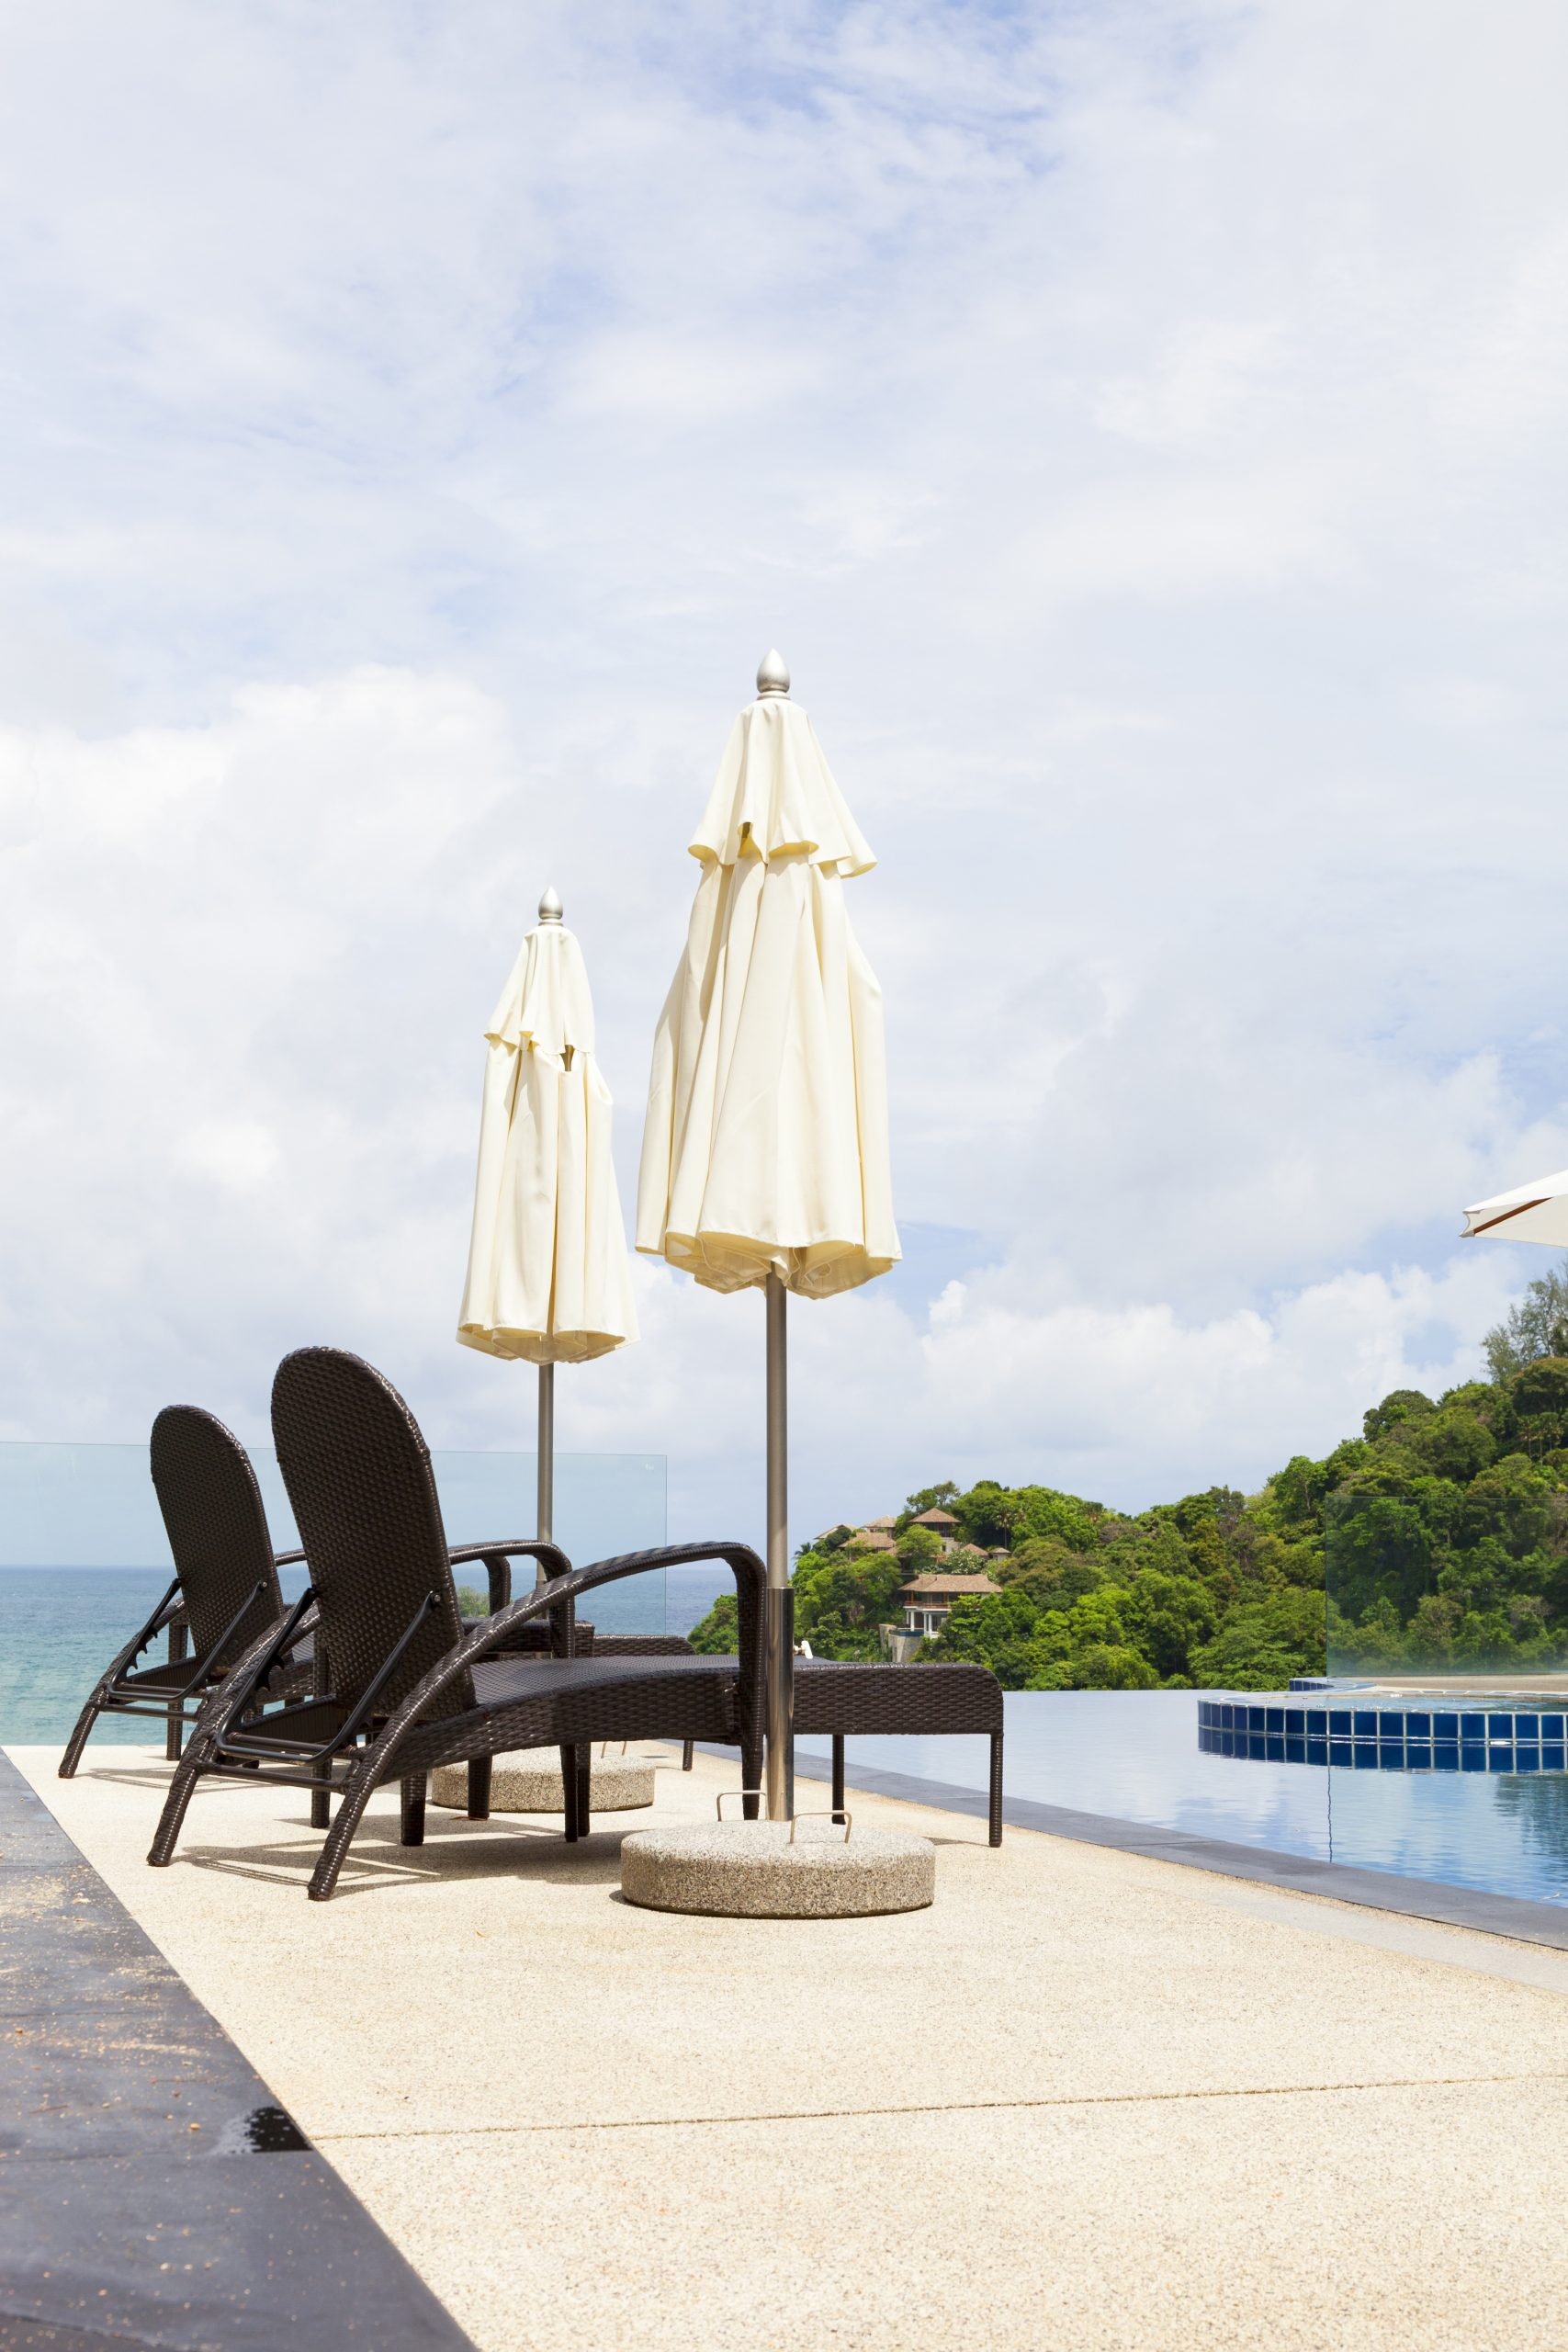 loungers next to a swimming pool with glass pool safety fencing